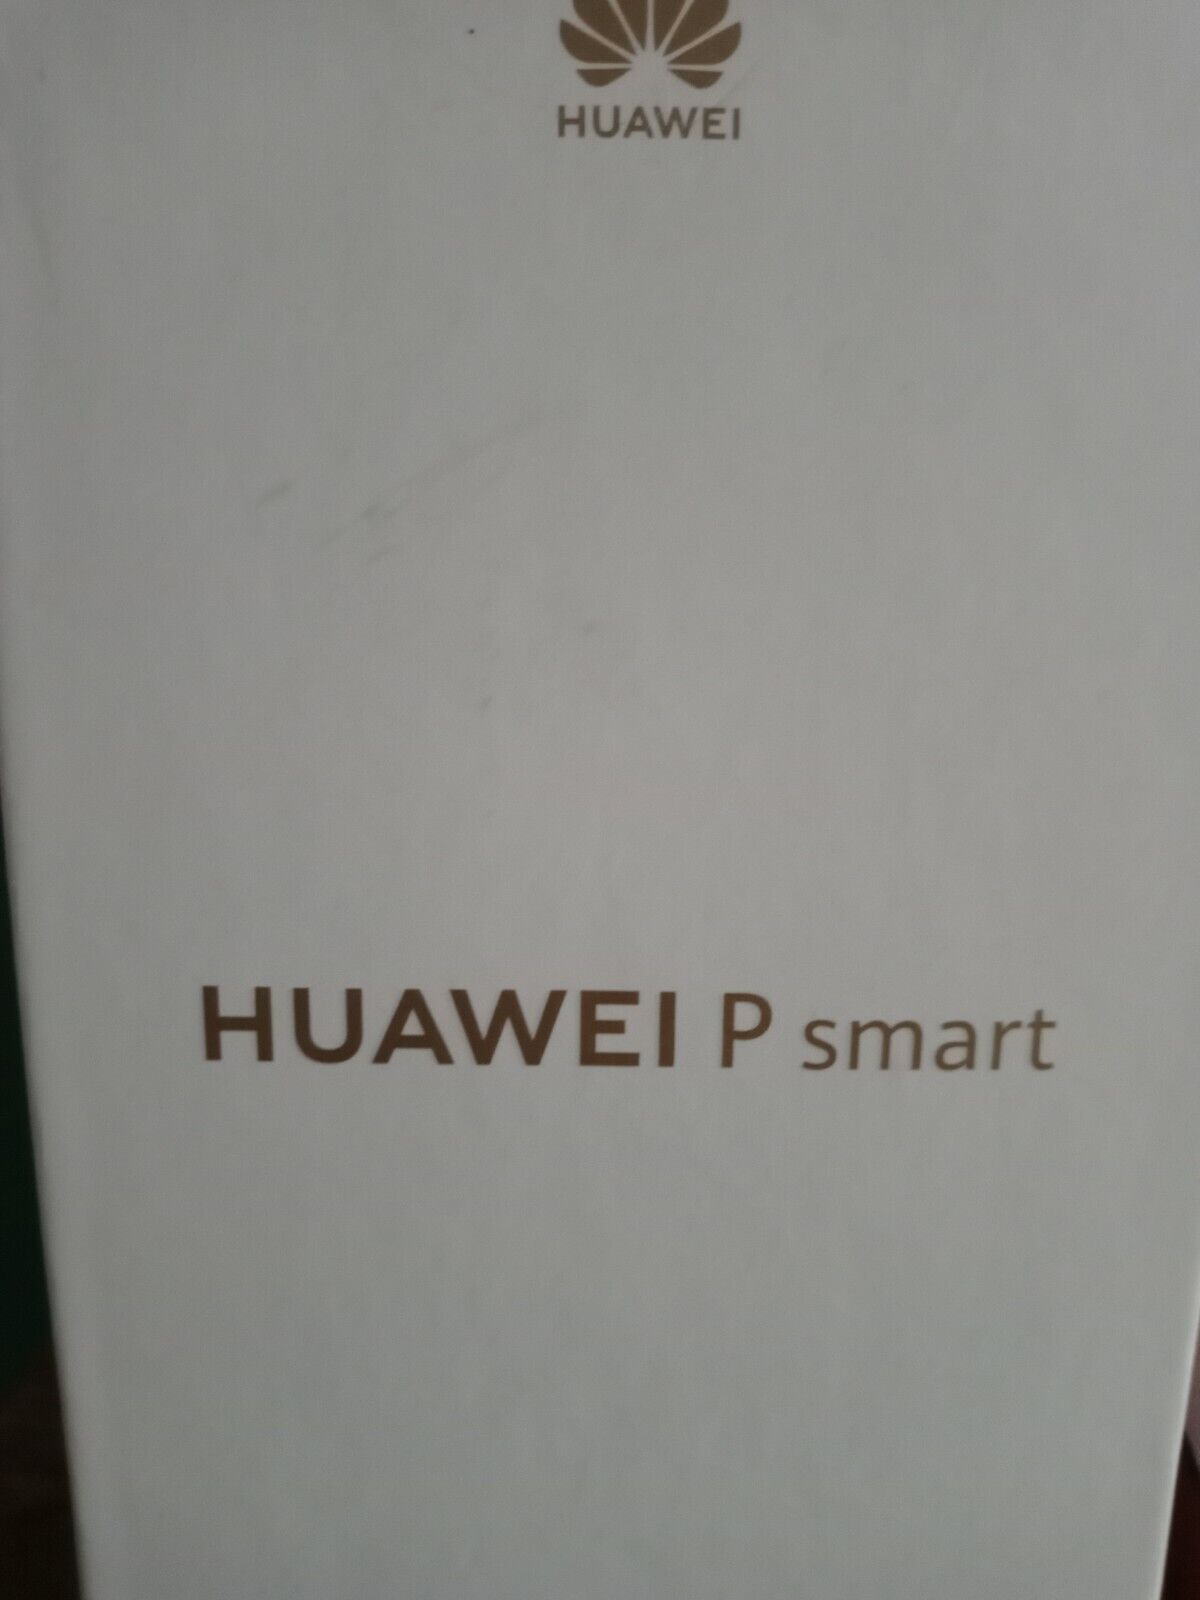 Android Phone - Huawei P smart 2019 Mobile phone